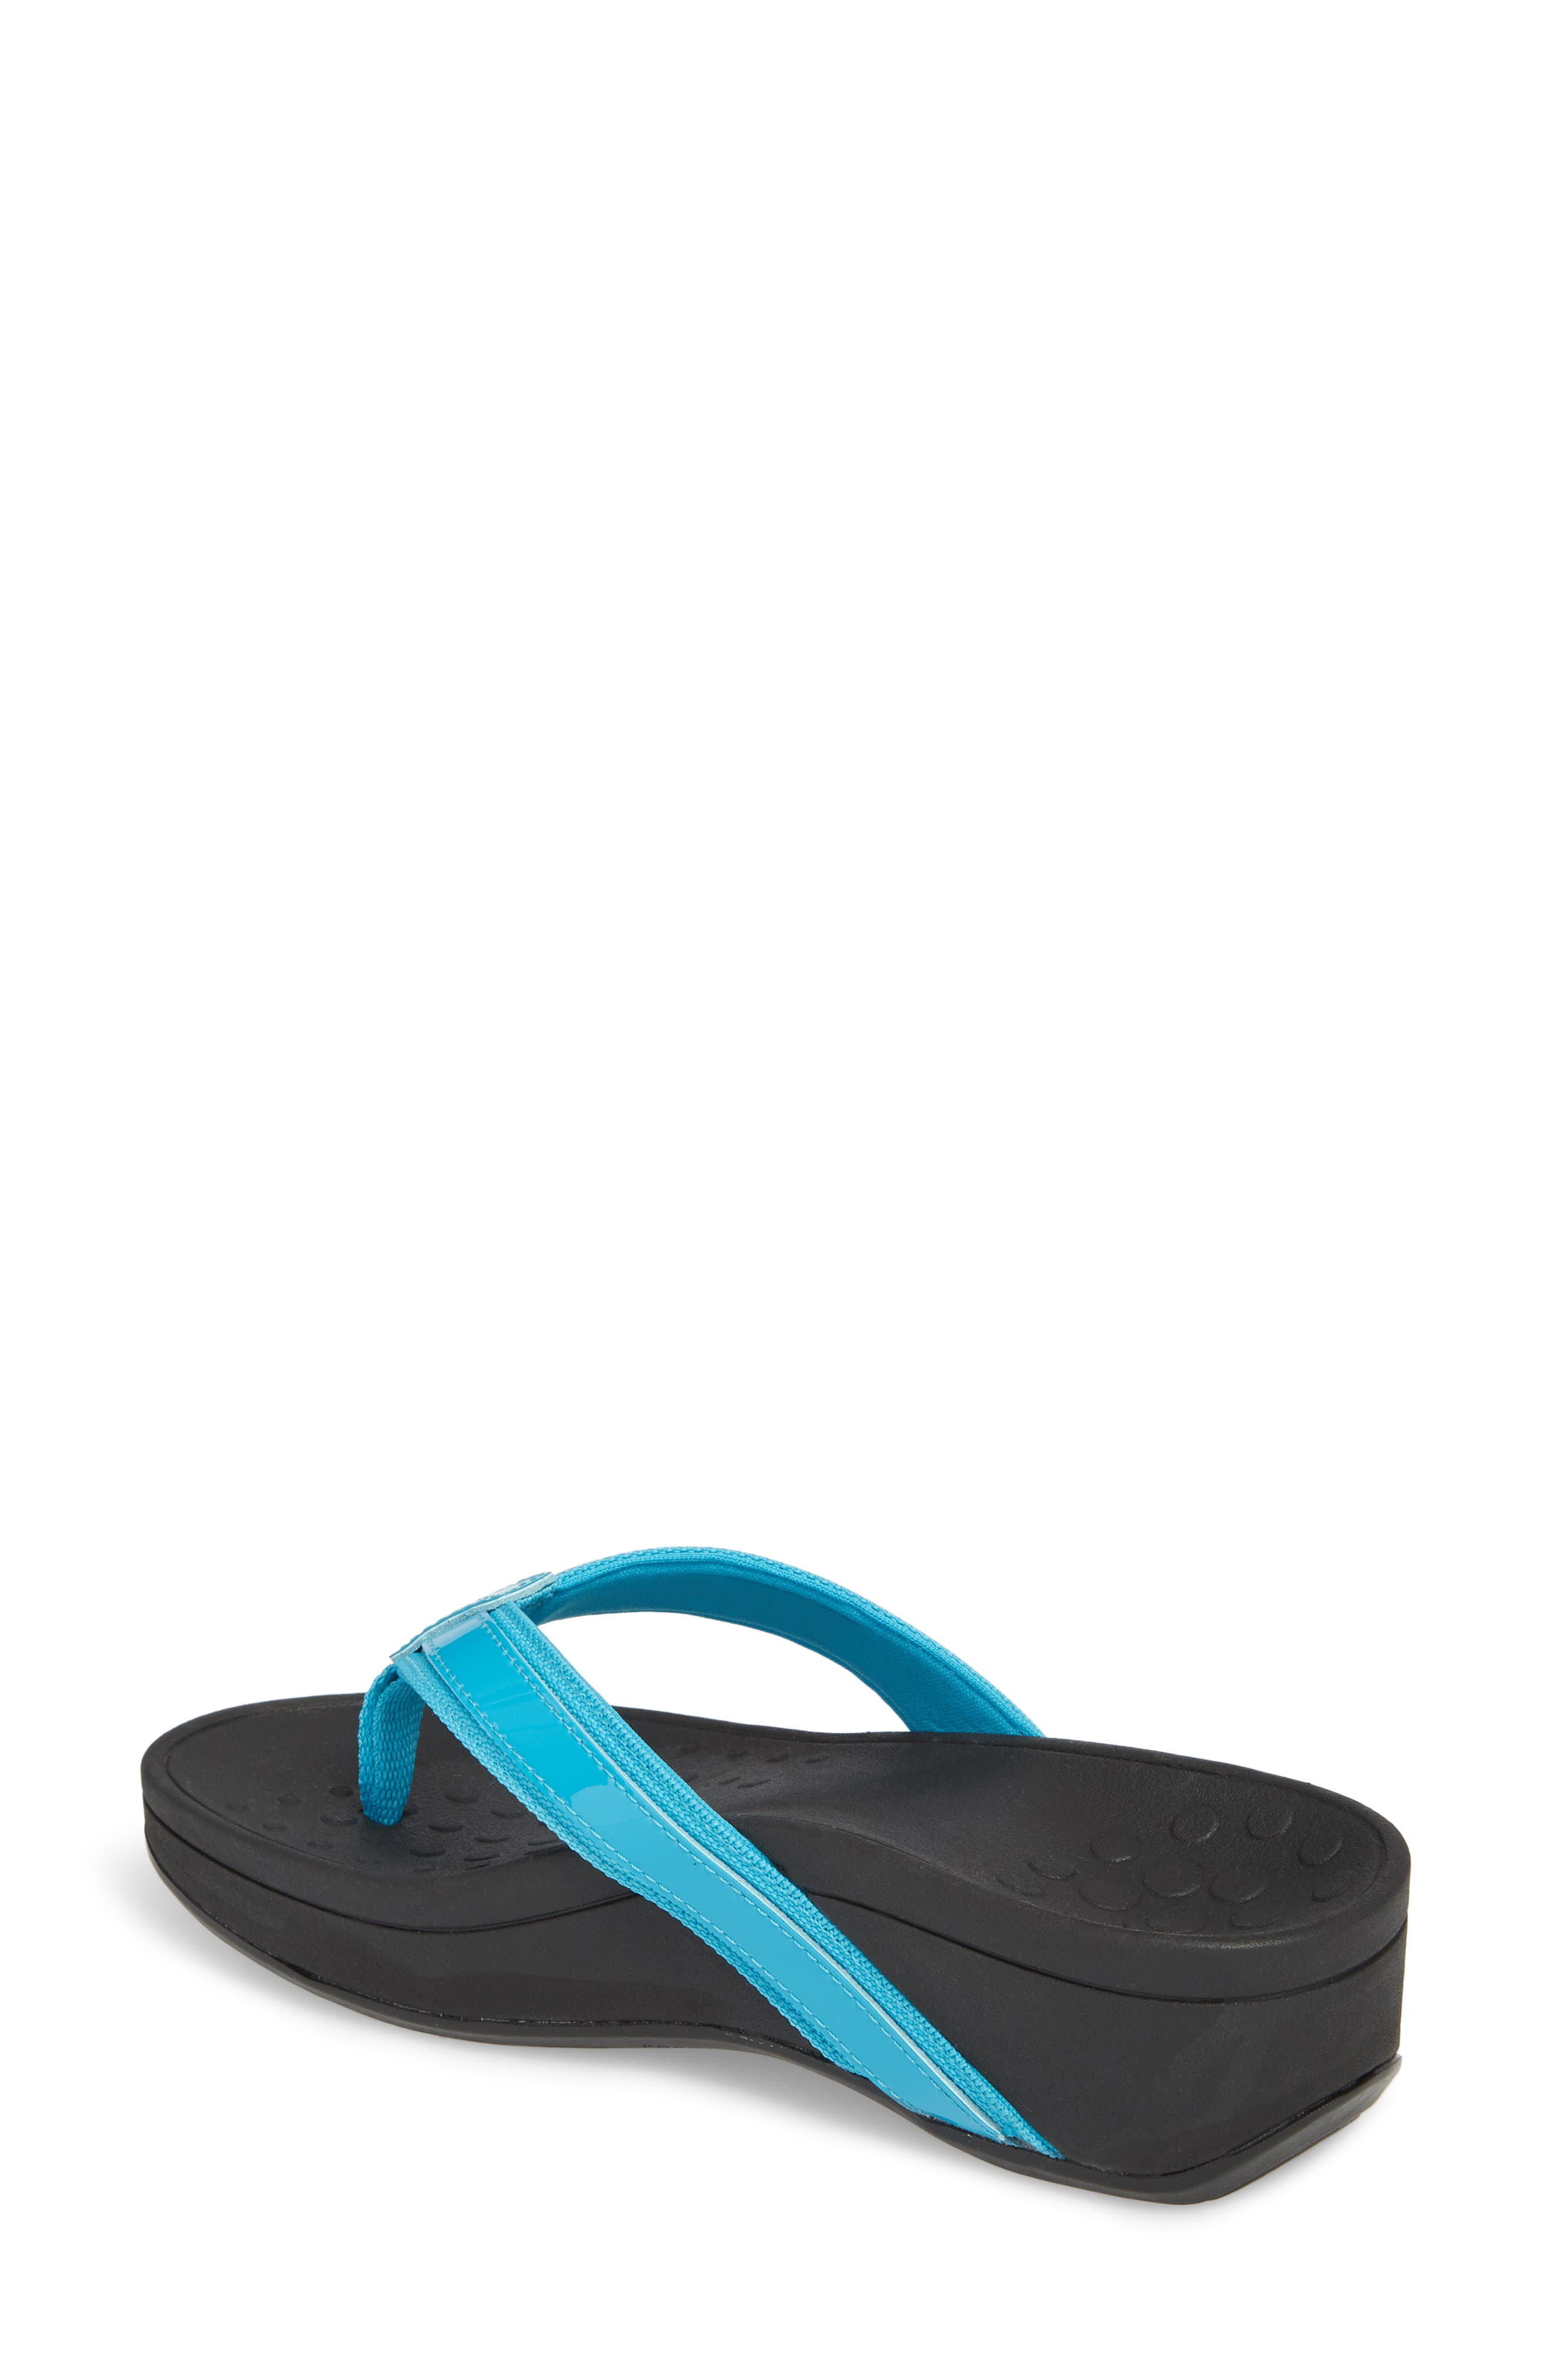 High Tide Wedge Flip Flop,                             Alternate thumbnail 2, color,                             TURQUOISE LEATHER